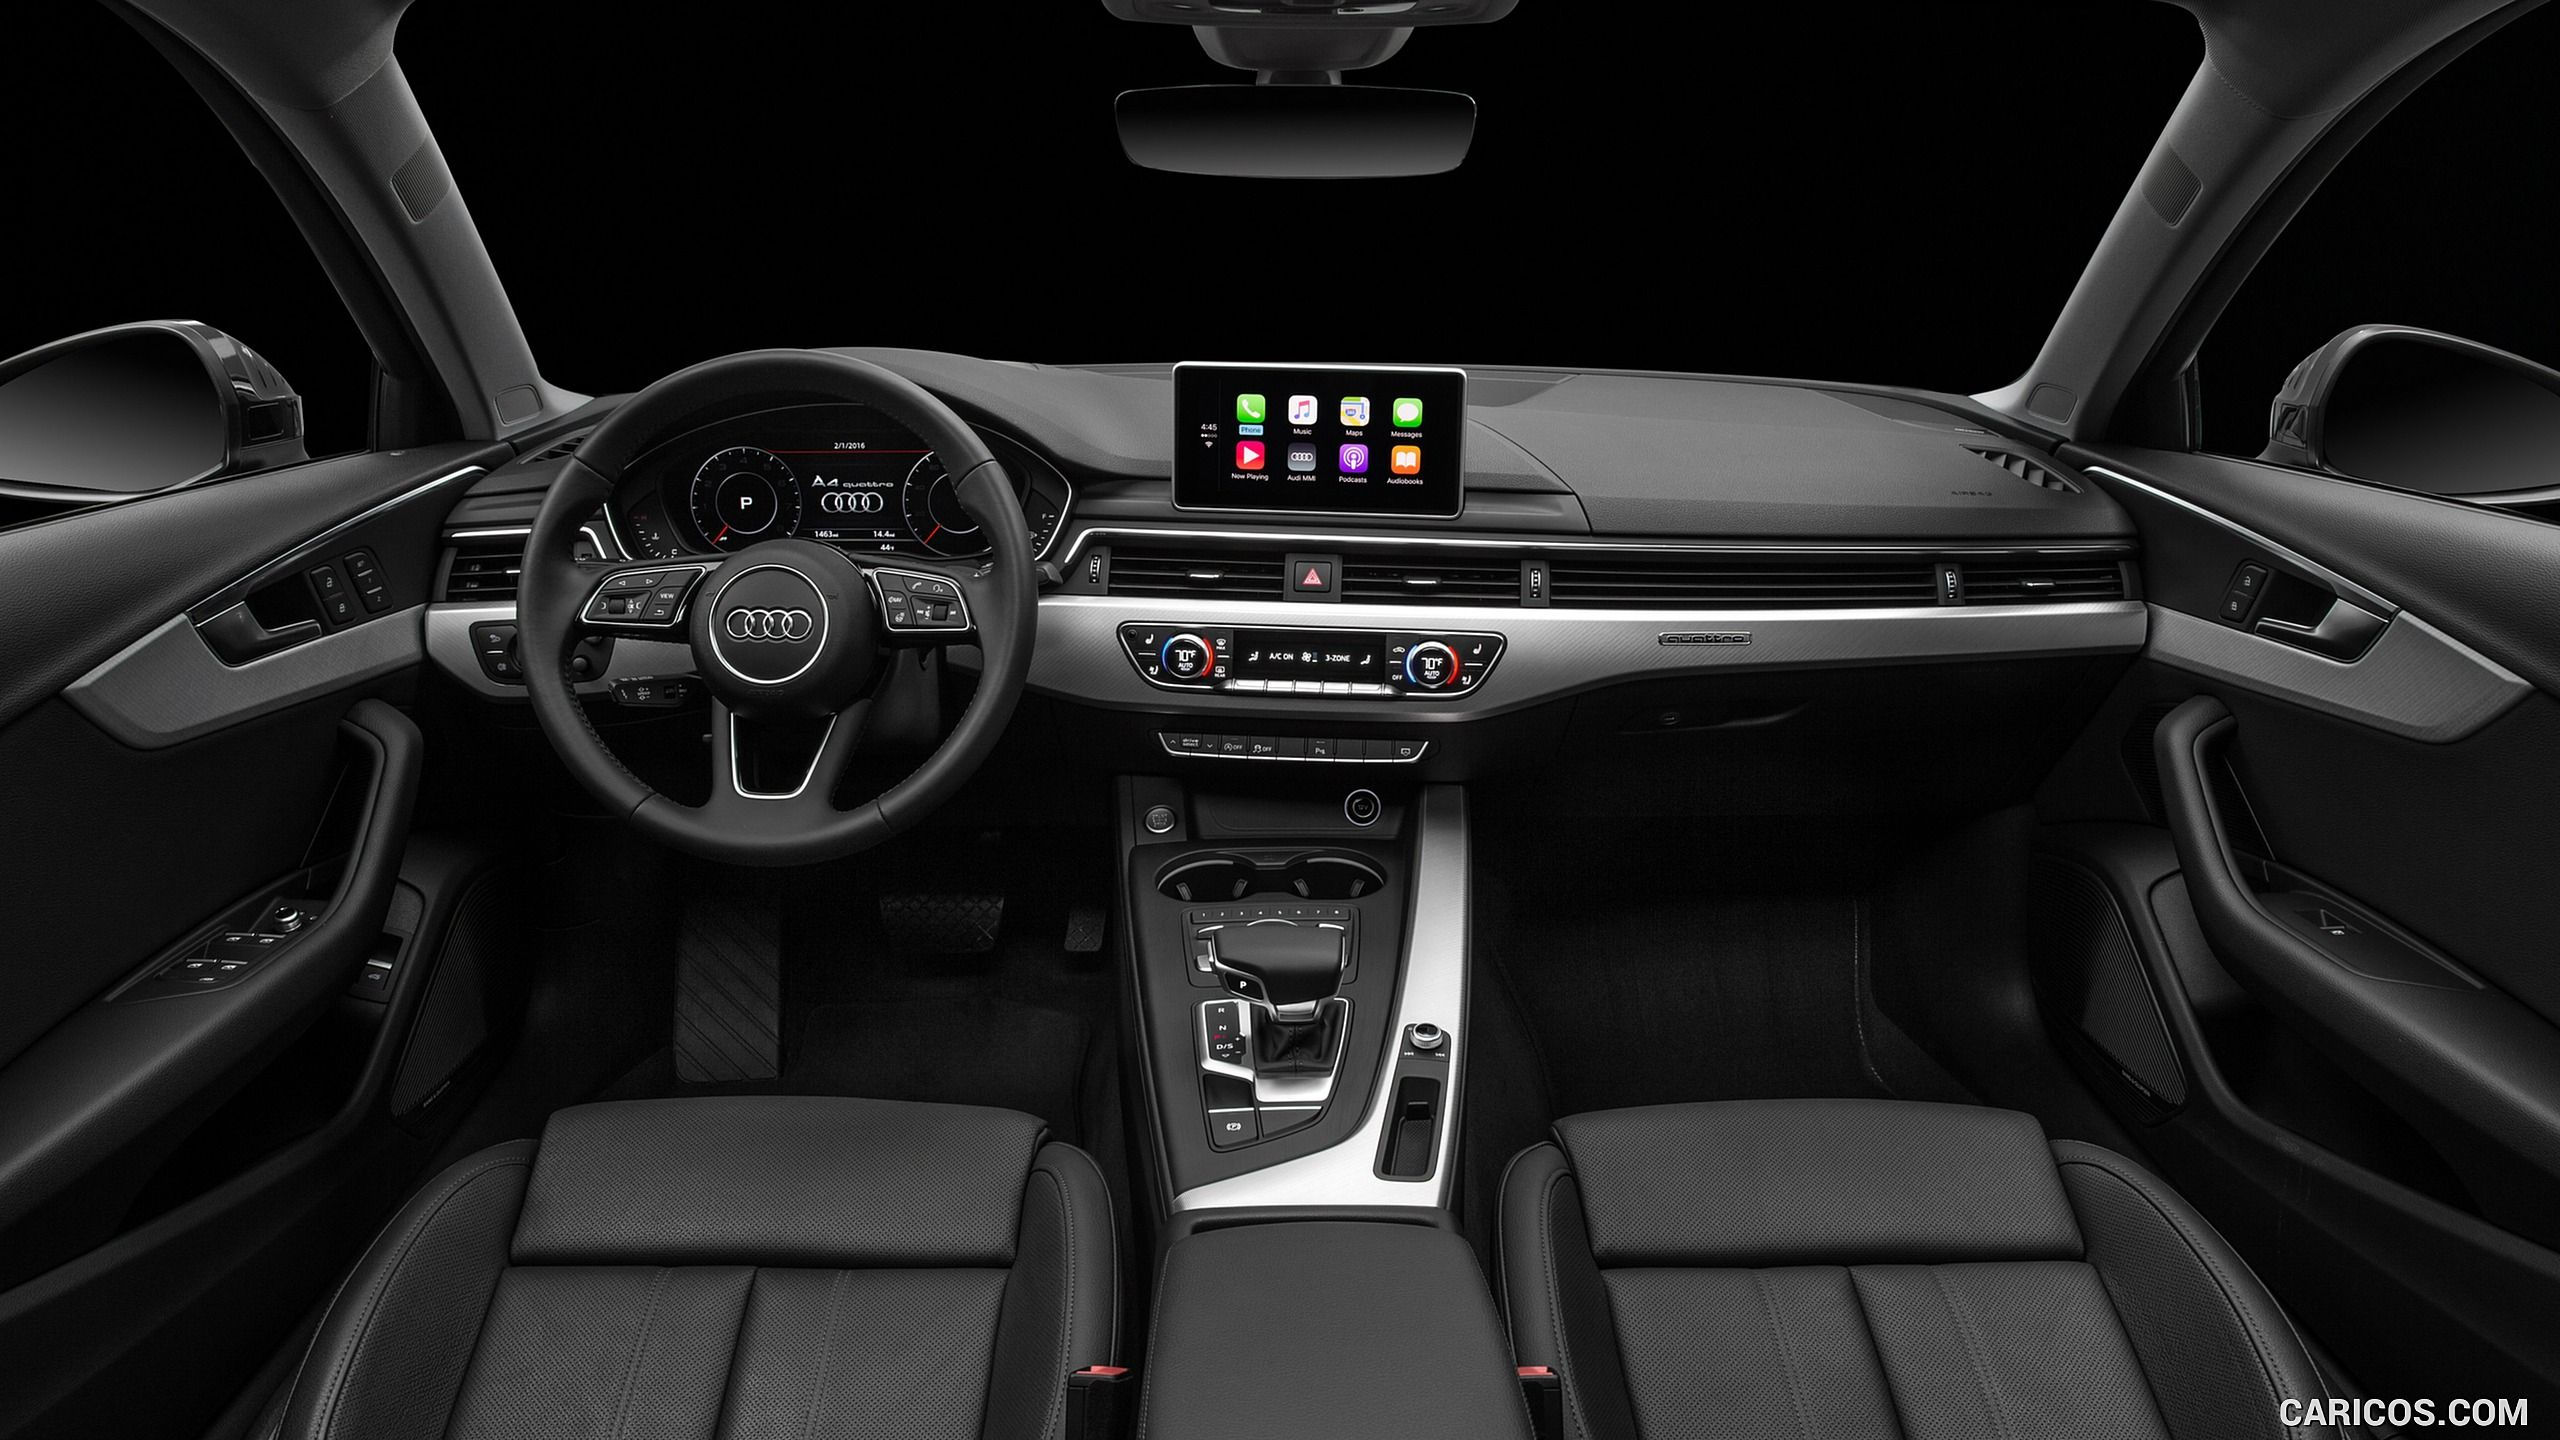 2017 Audi A4 2 0t Quattro Us Spec Interior Cockpit Hd In 2020 Audi Interior Audi A4 2017 Audi A4